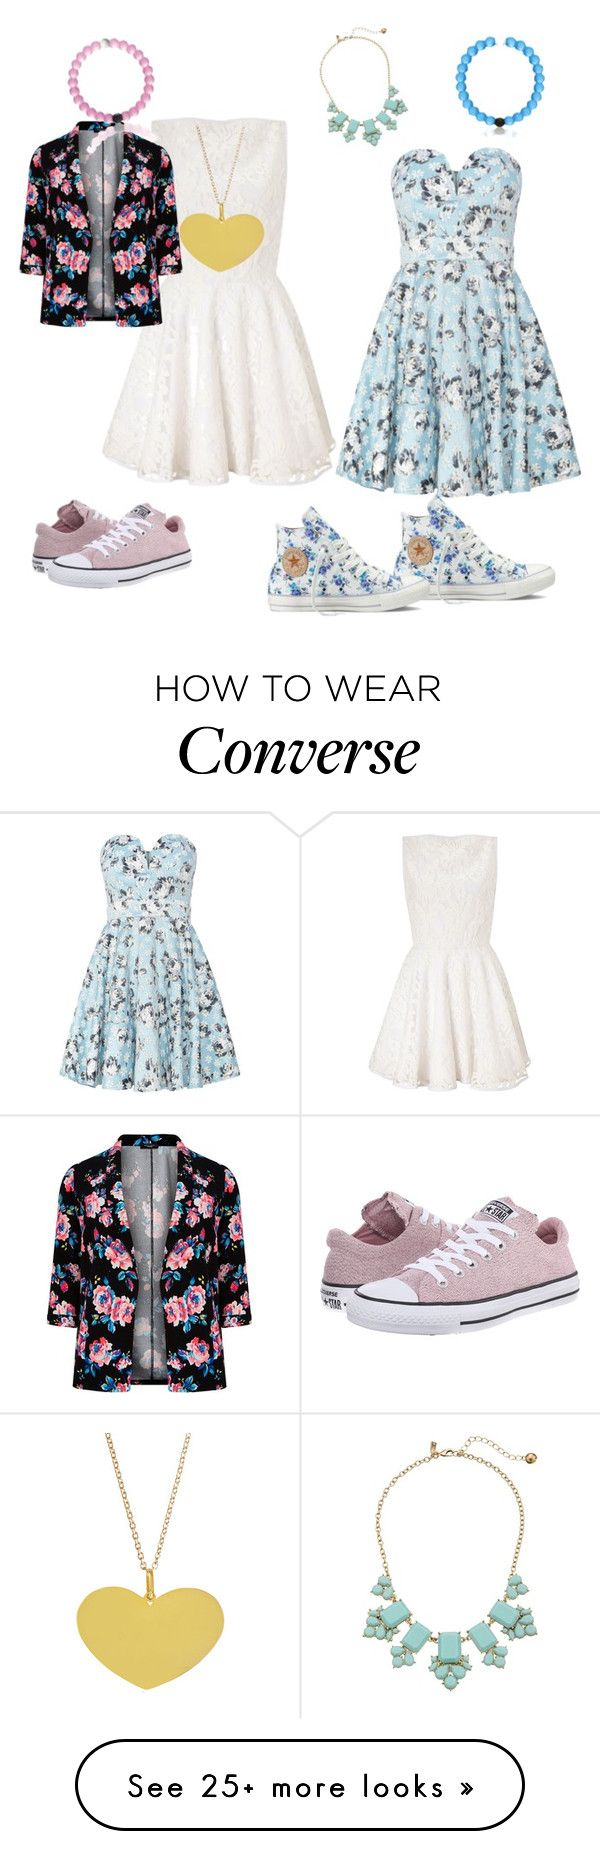 """My day with my converse and Lokai's"" by janb-1 on Polyvore featuring Lipsy, TFNC, Converse and Kate Spade"